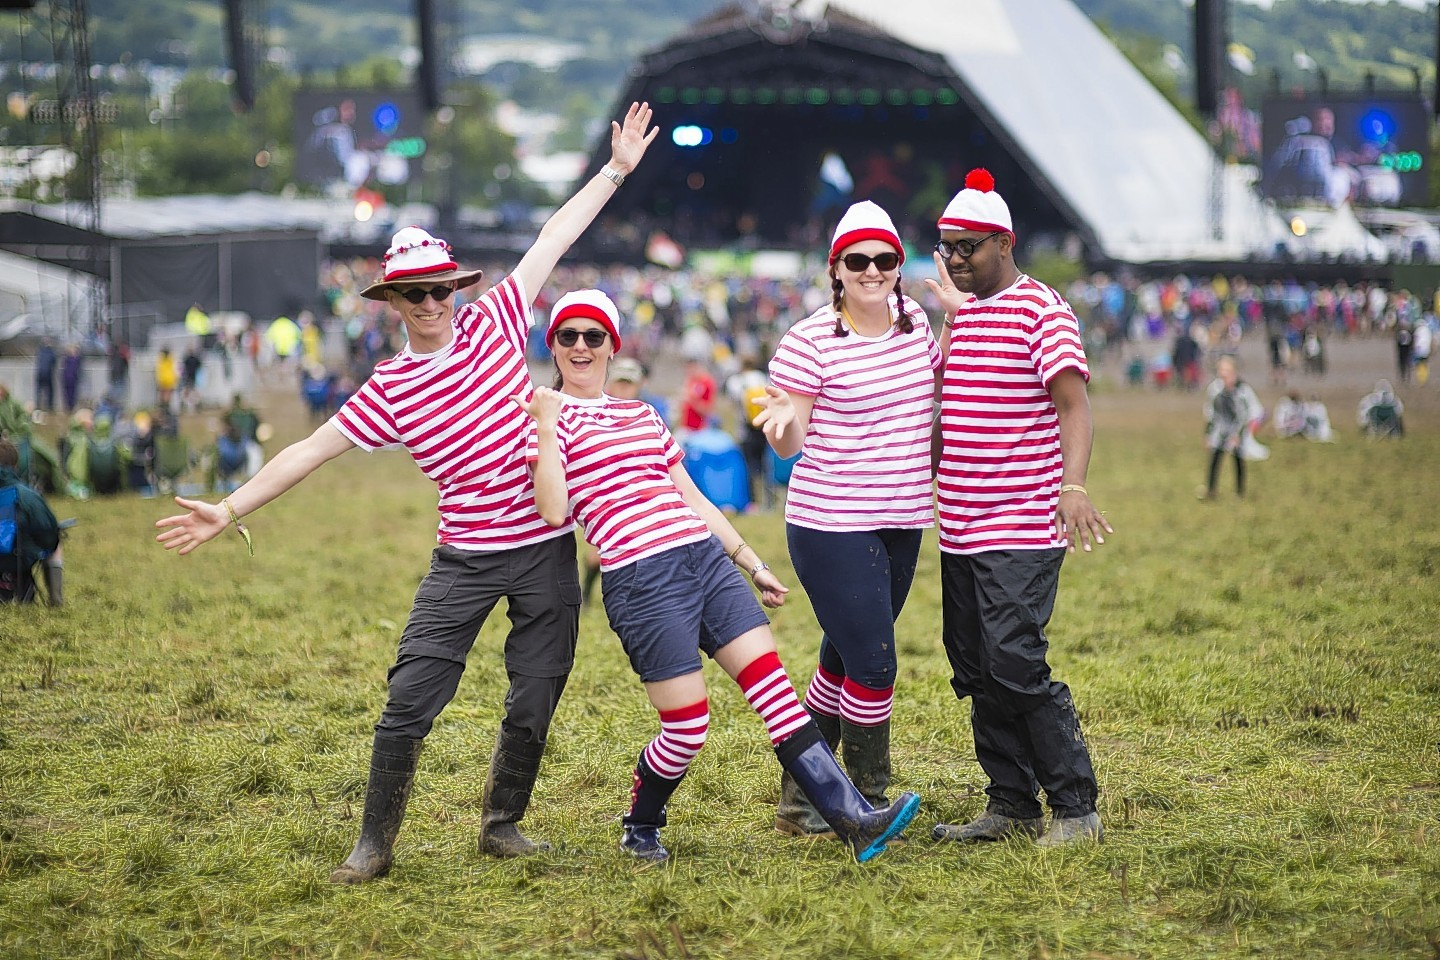 Music fans are having fun at Glastonbury